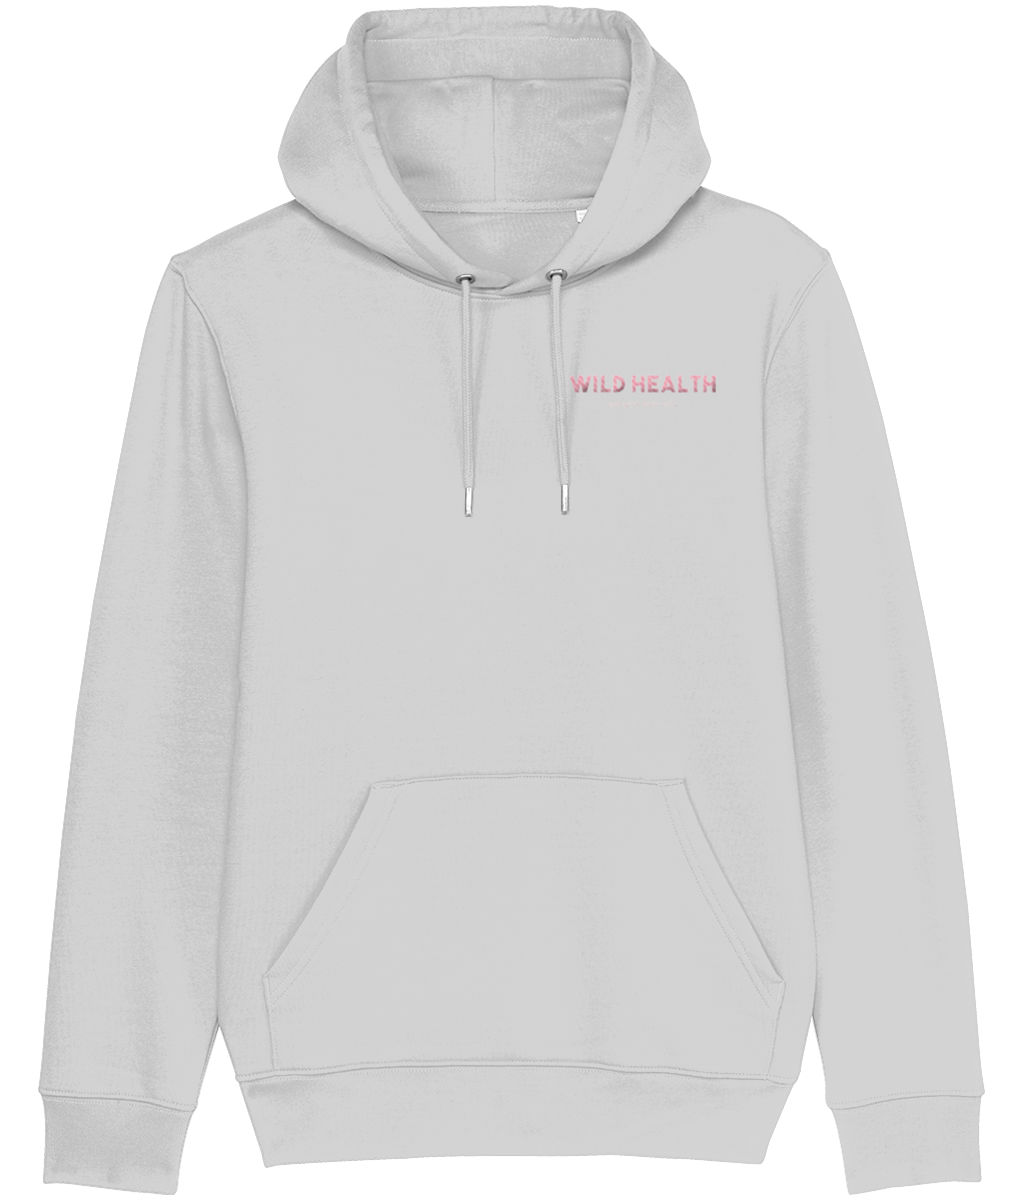 Wild Health Embroidered Cruiser Hoodie - Grey/Pink